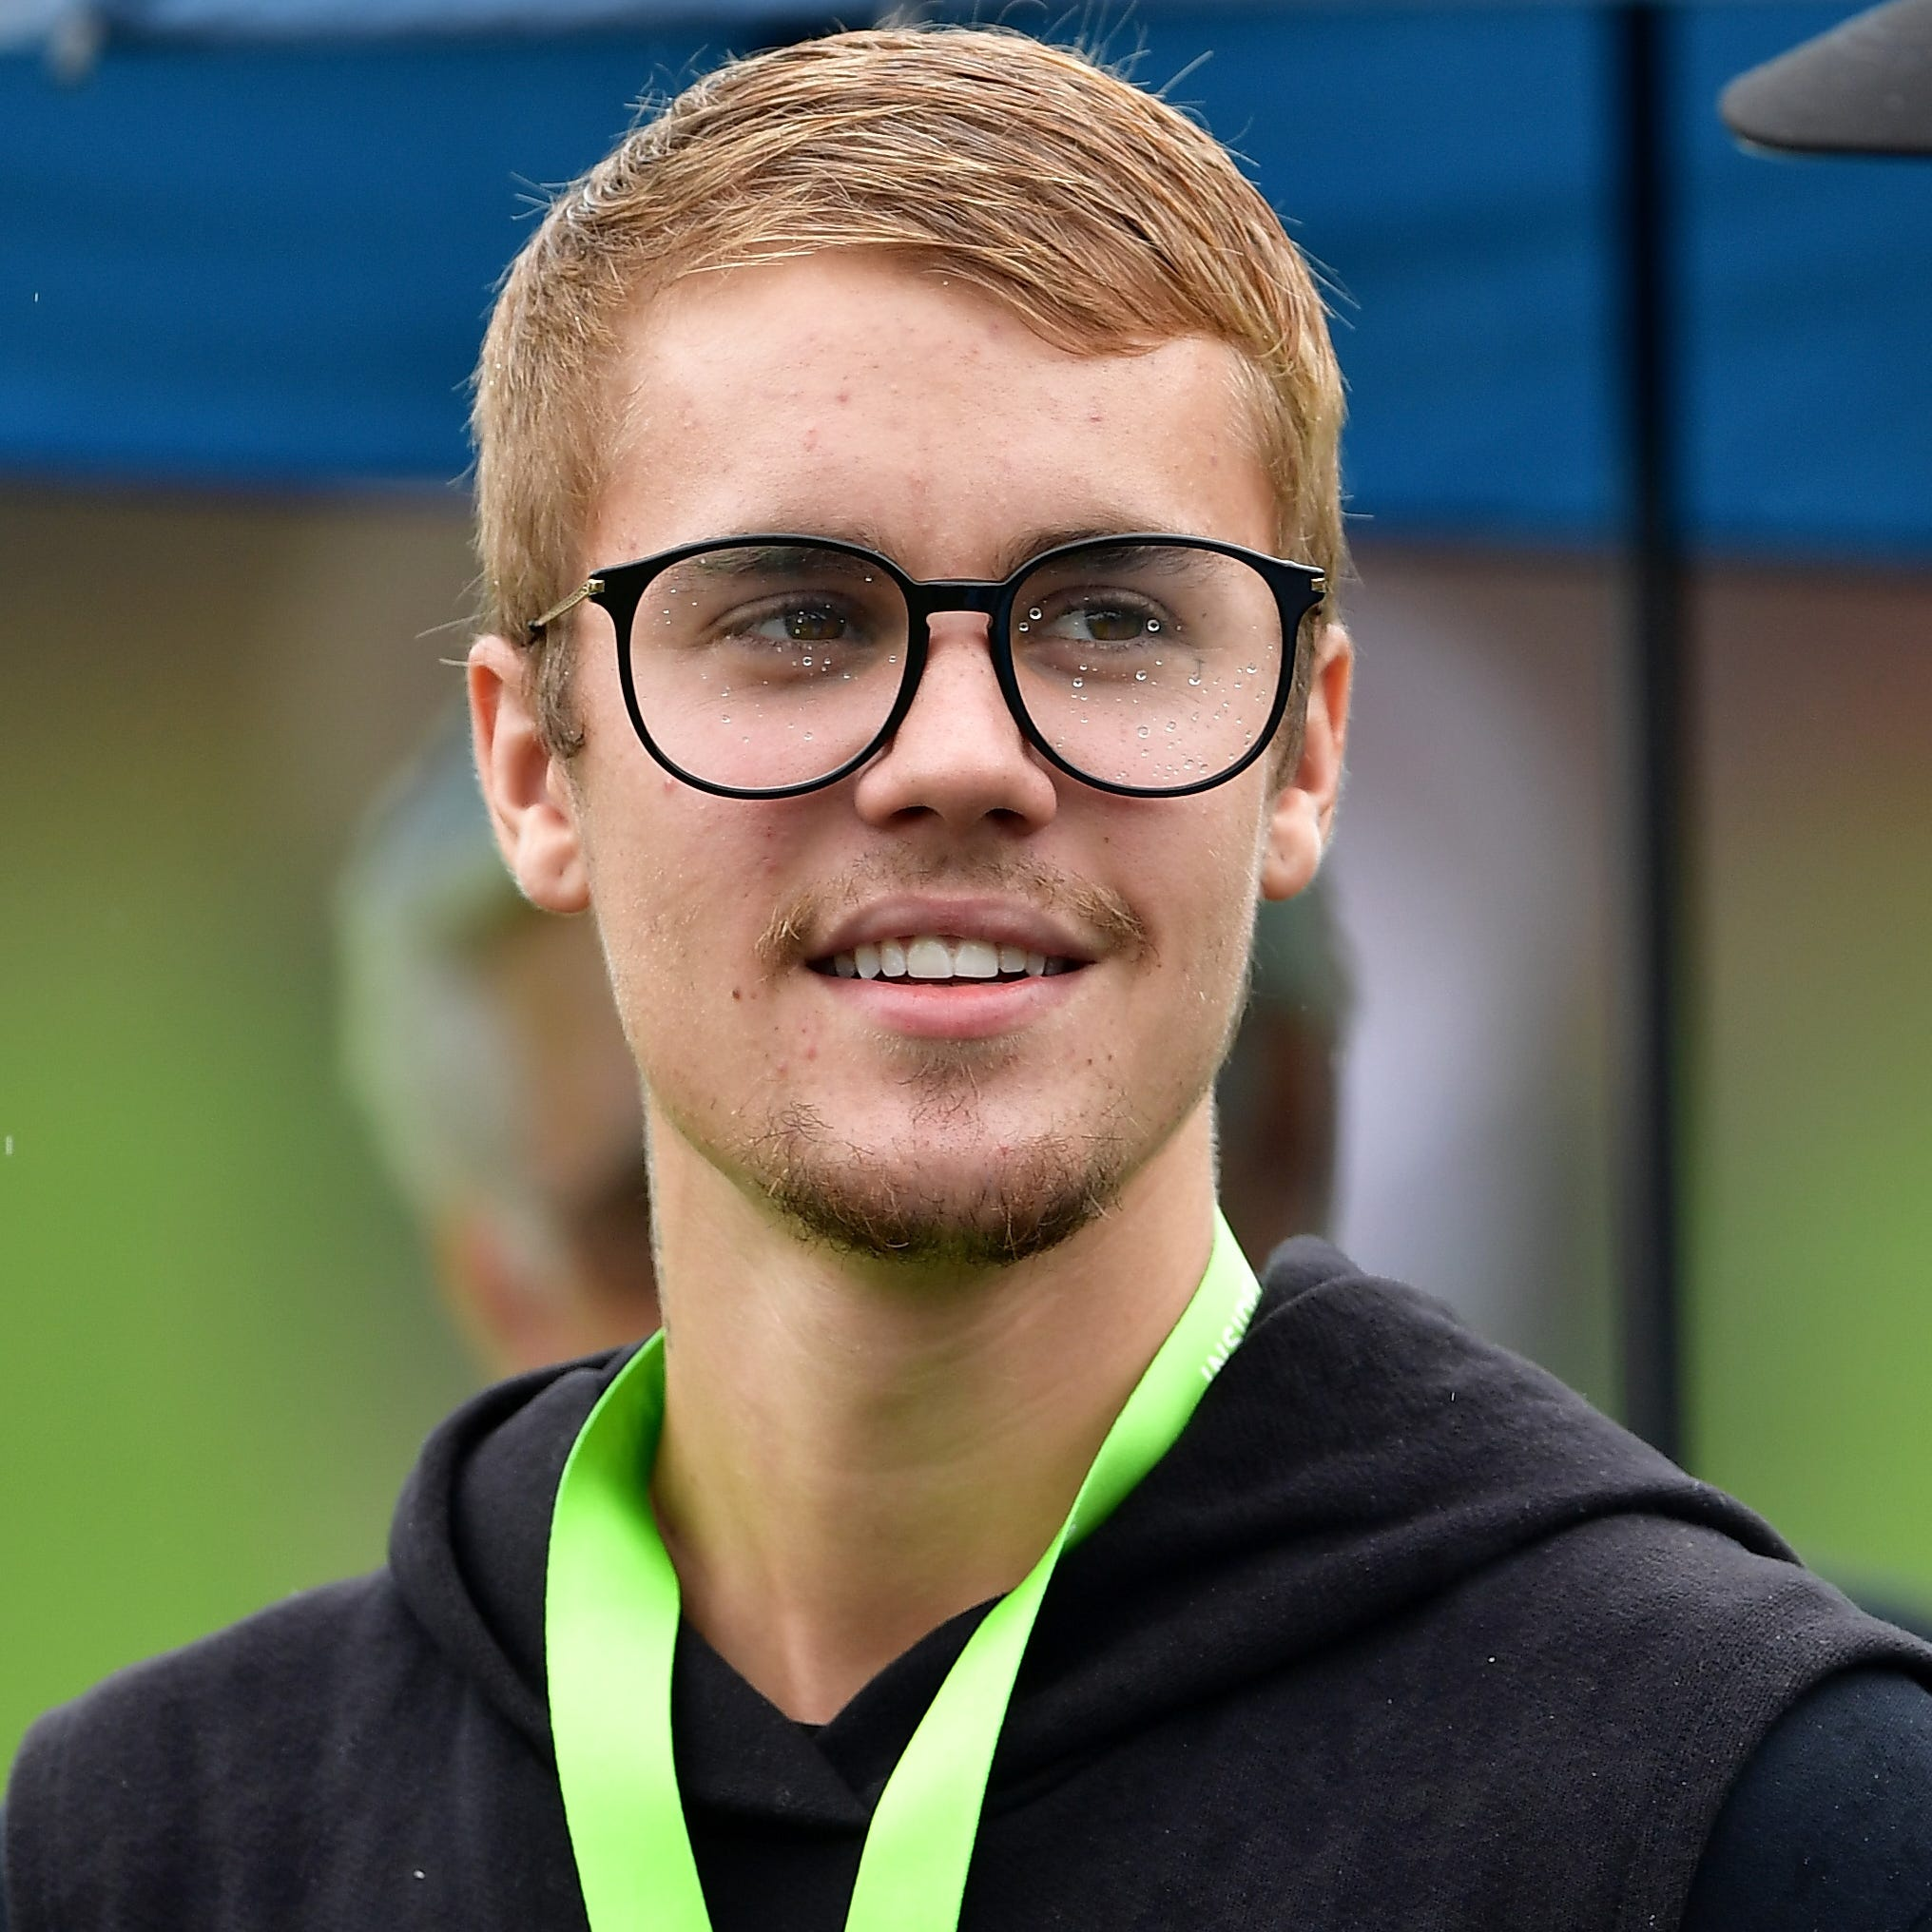 Justin Bieber is heading to YouTube next year with a new untitled project.